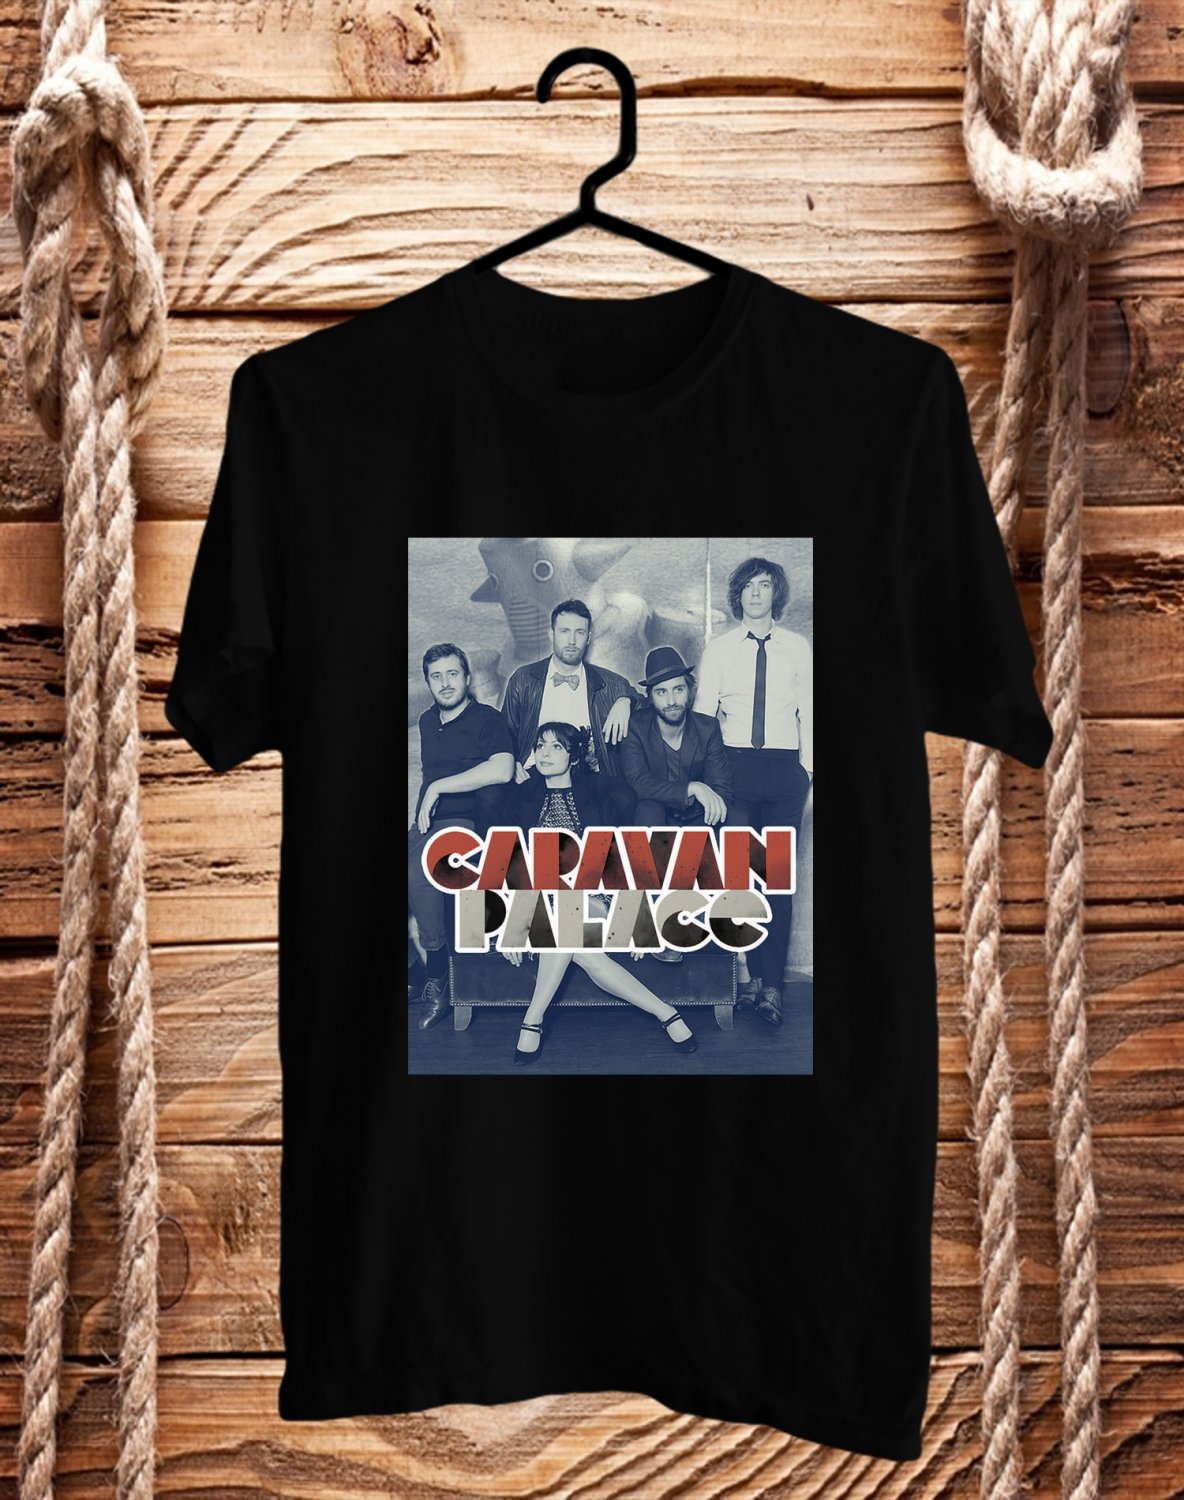 Caravan Palace N.America Tour 2017 Black Tee's Front Side by Complexart